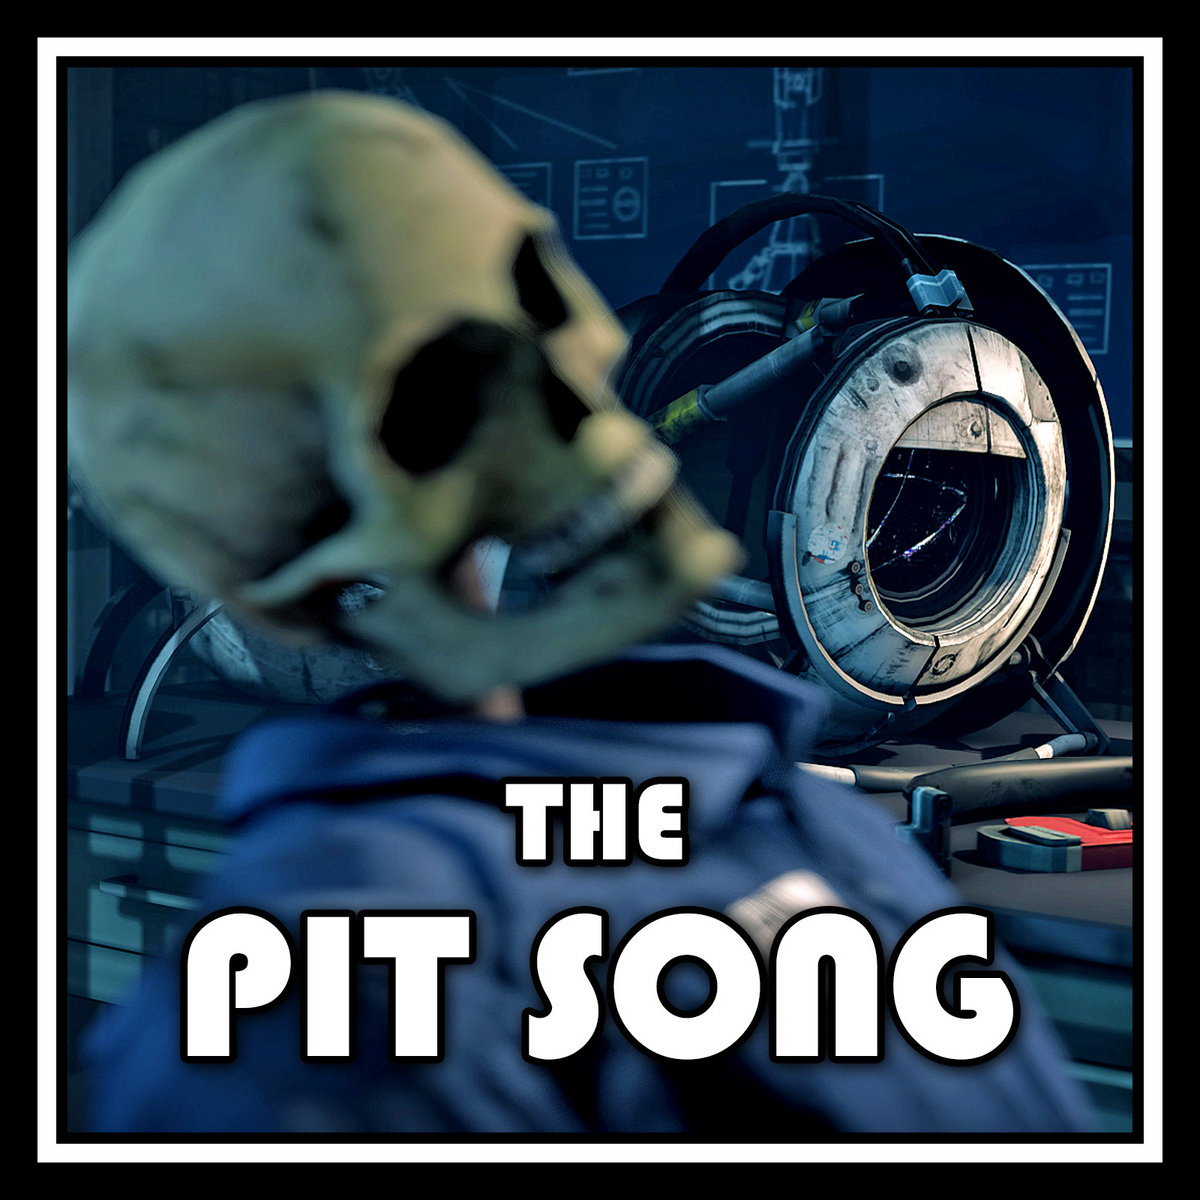 The Pit Song | Harry Callaghan (Harry101UK)